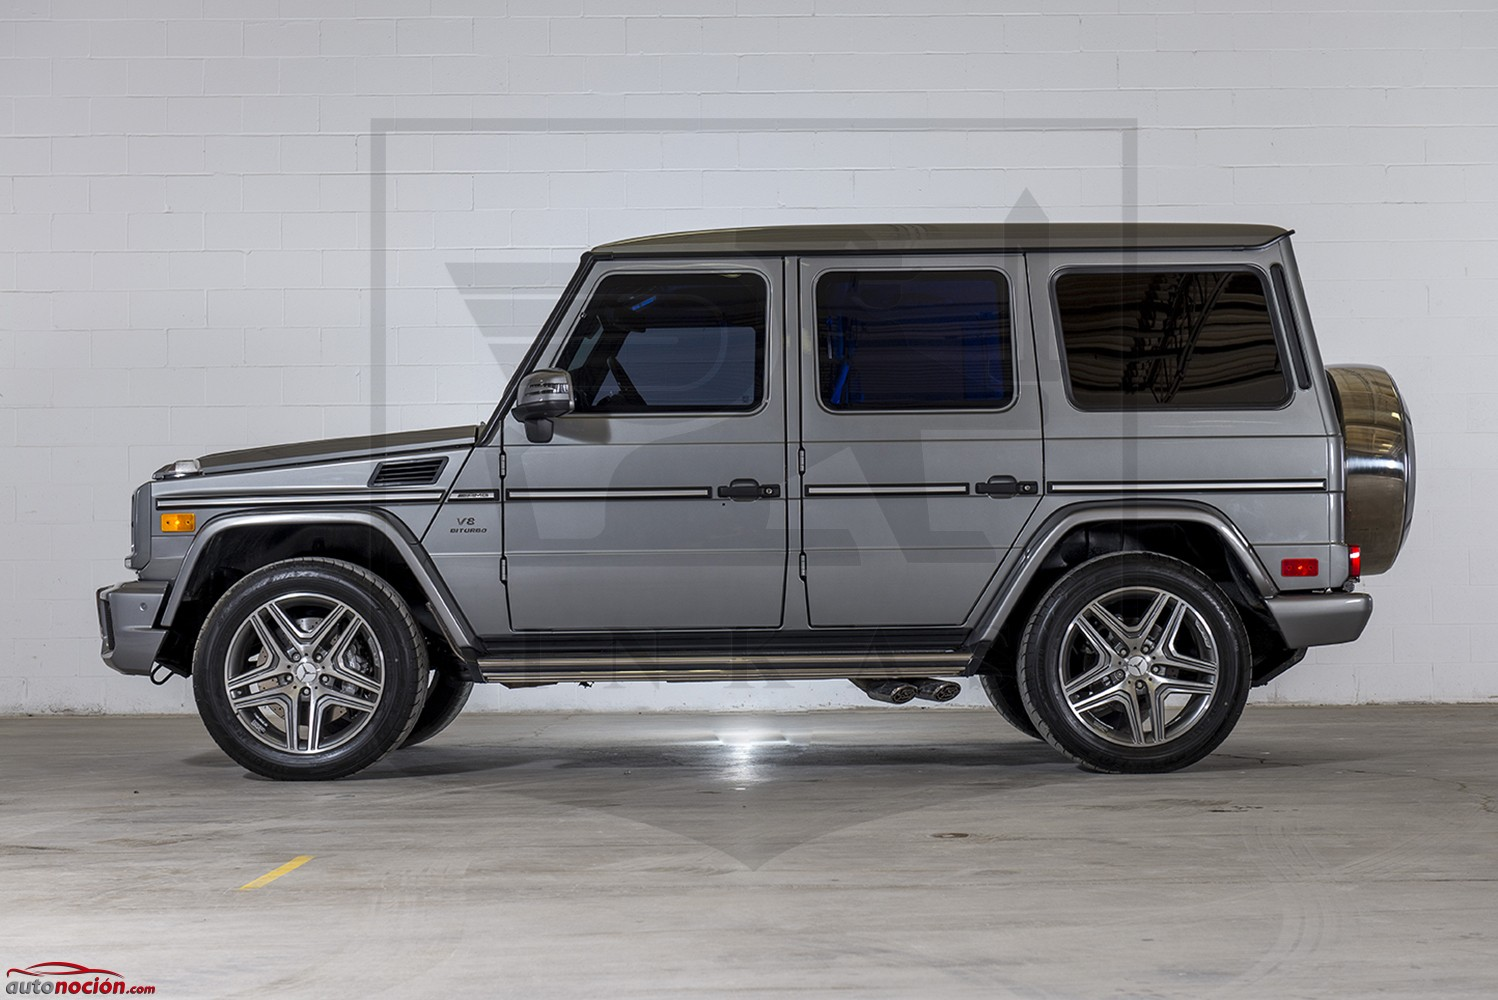 Mercedes G63 AMG Inkas Armored (26)